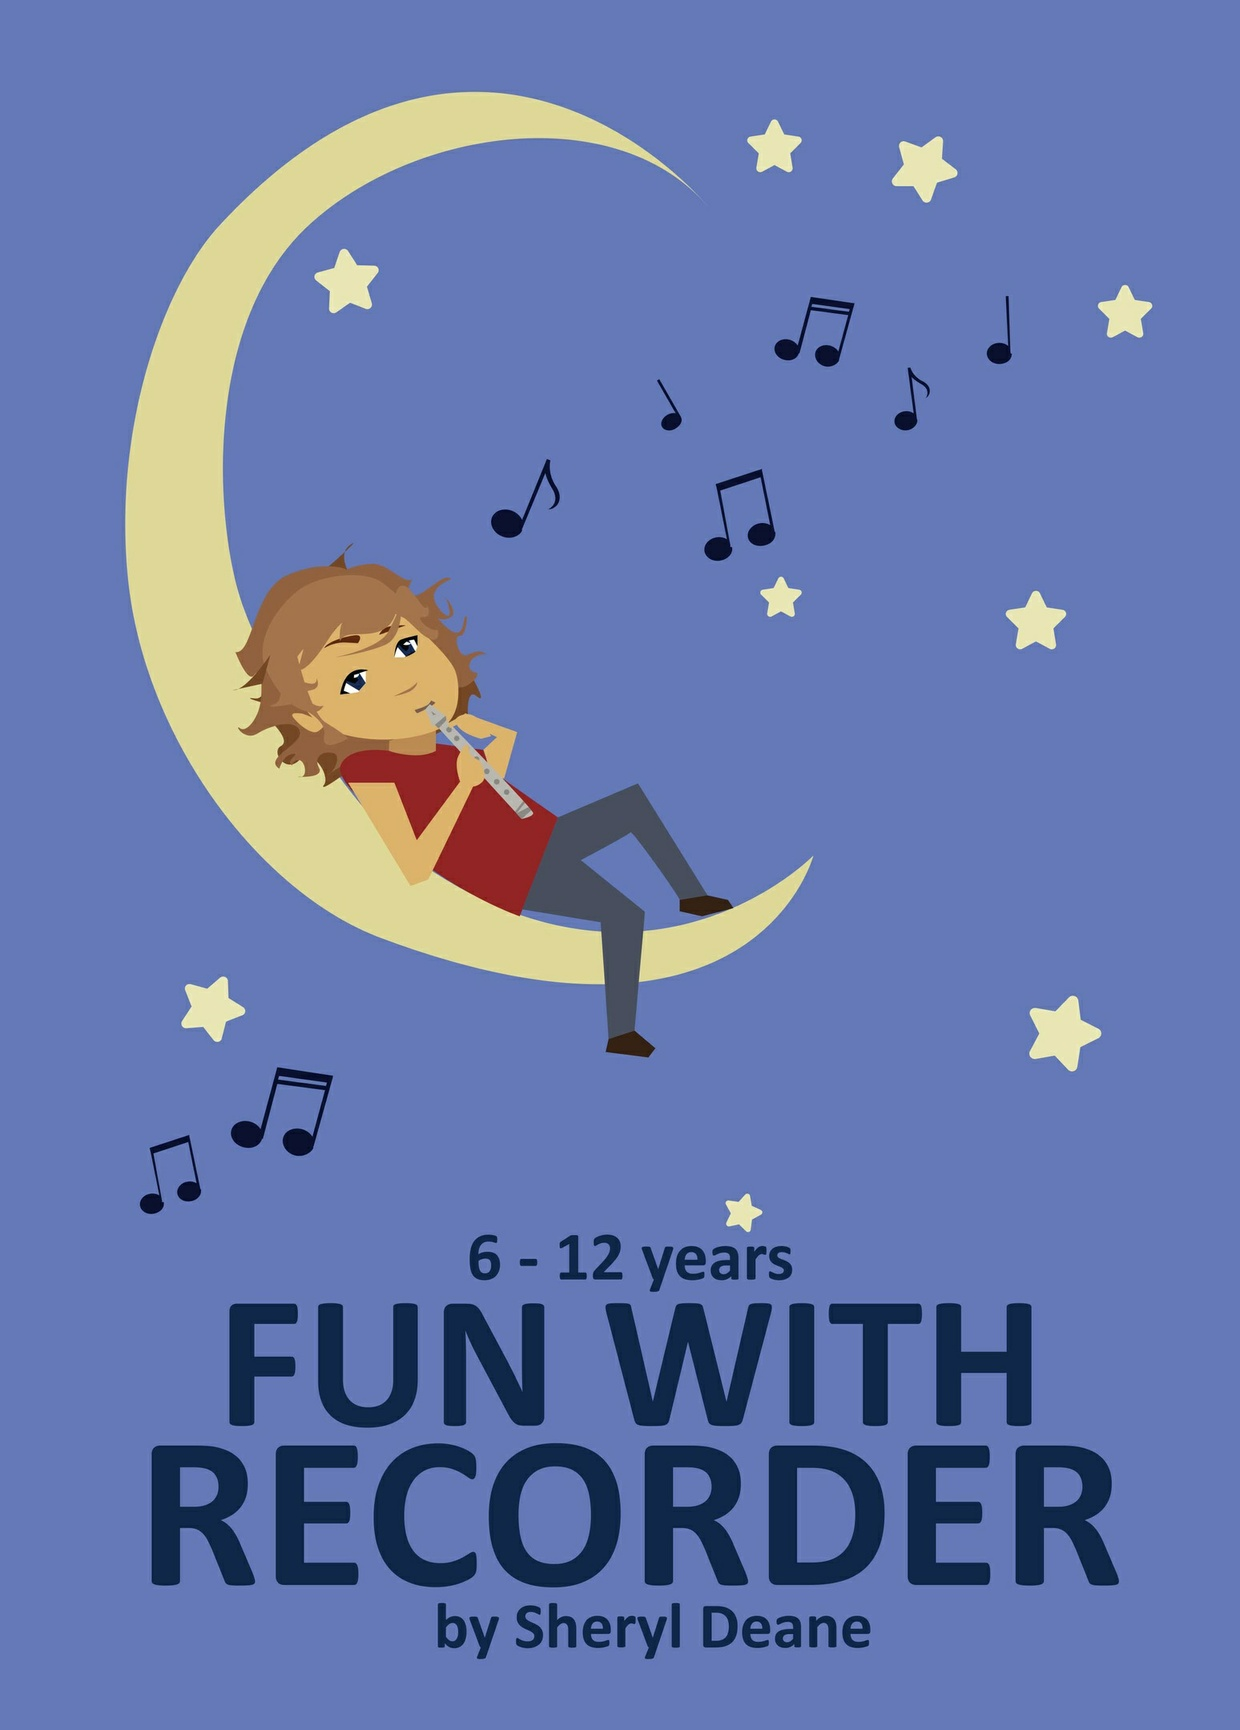 Fun With Recorder By Sheryl Deane (English)